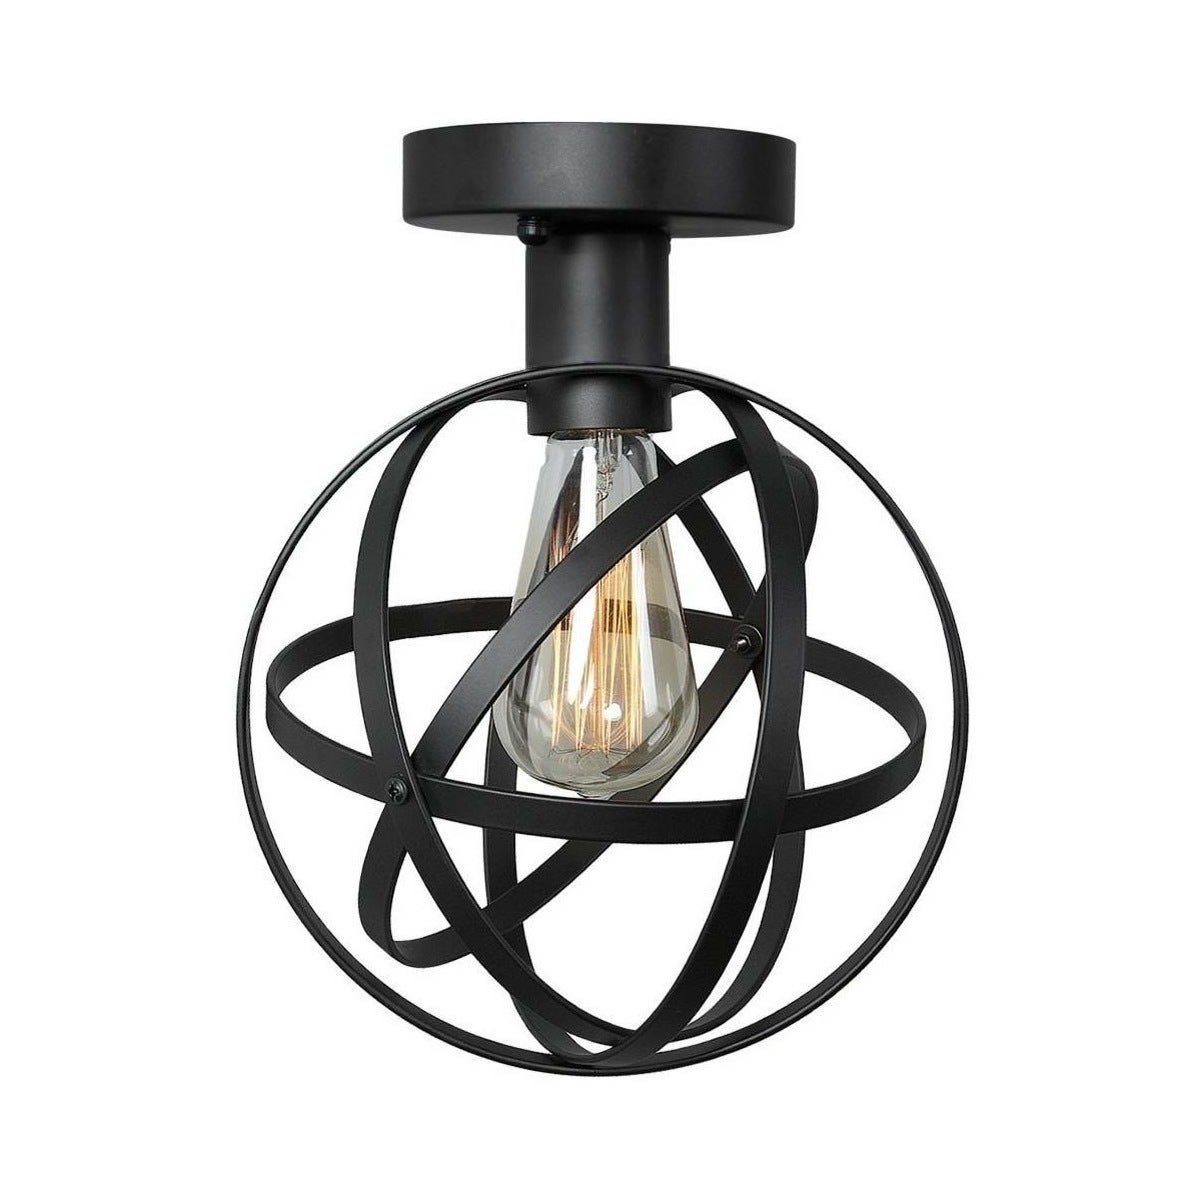 Shop Industrial Semi Flush Mount With Wire Cage Free Shipping Wiring A Light Fixture Today 19437596